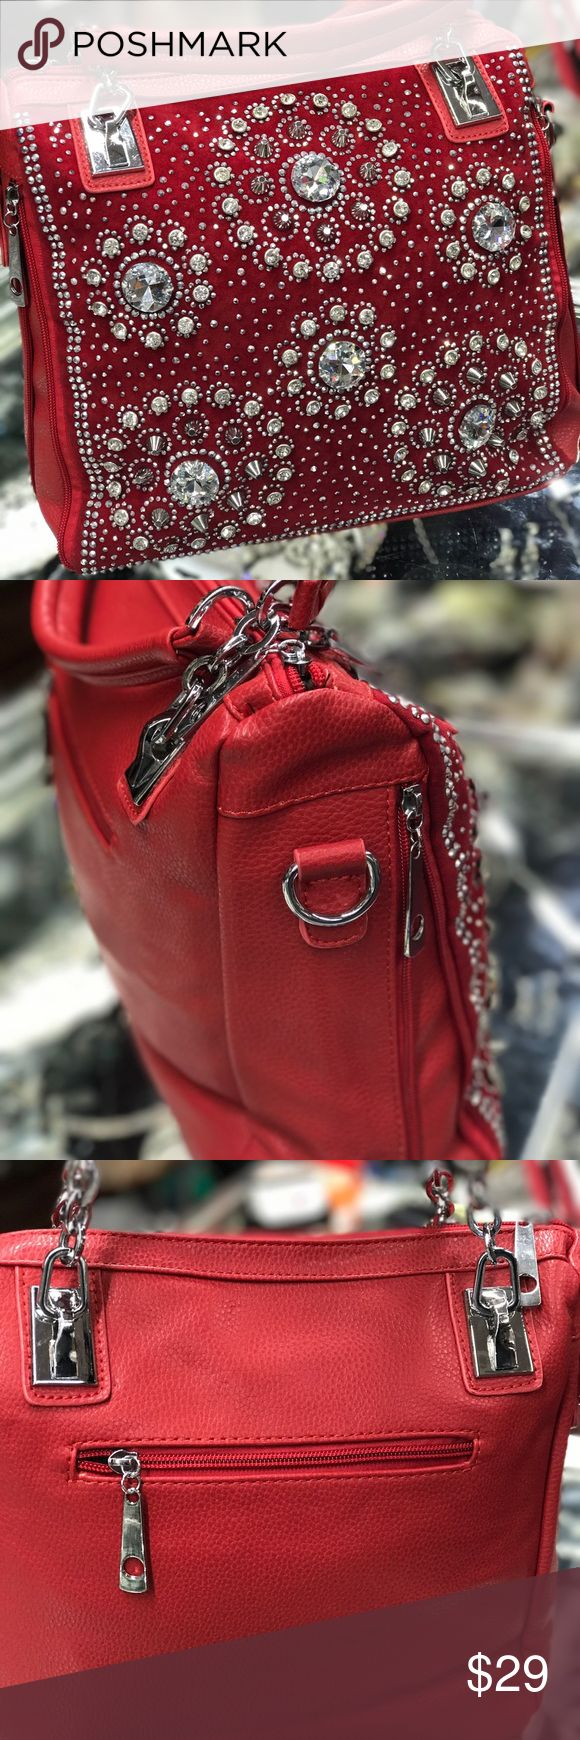 Red Rhinestone Purse Faux leather purse with clear rhinestones Bags Satchels